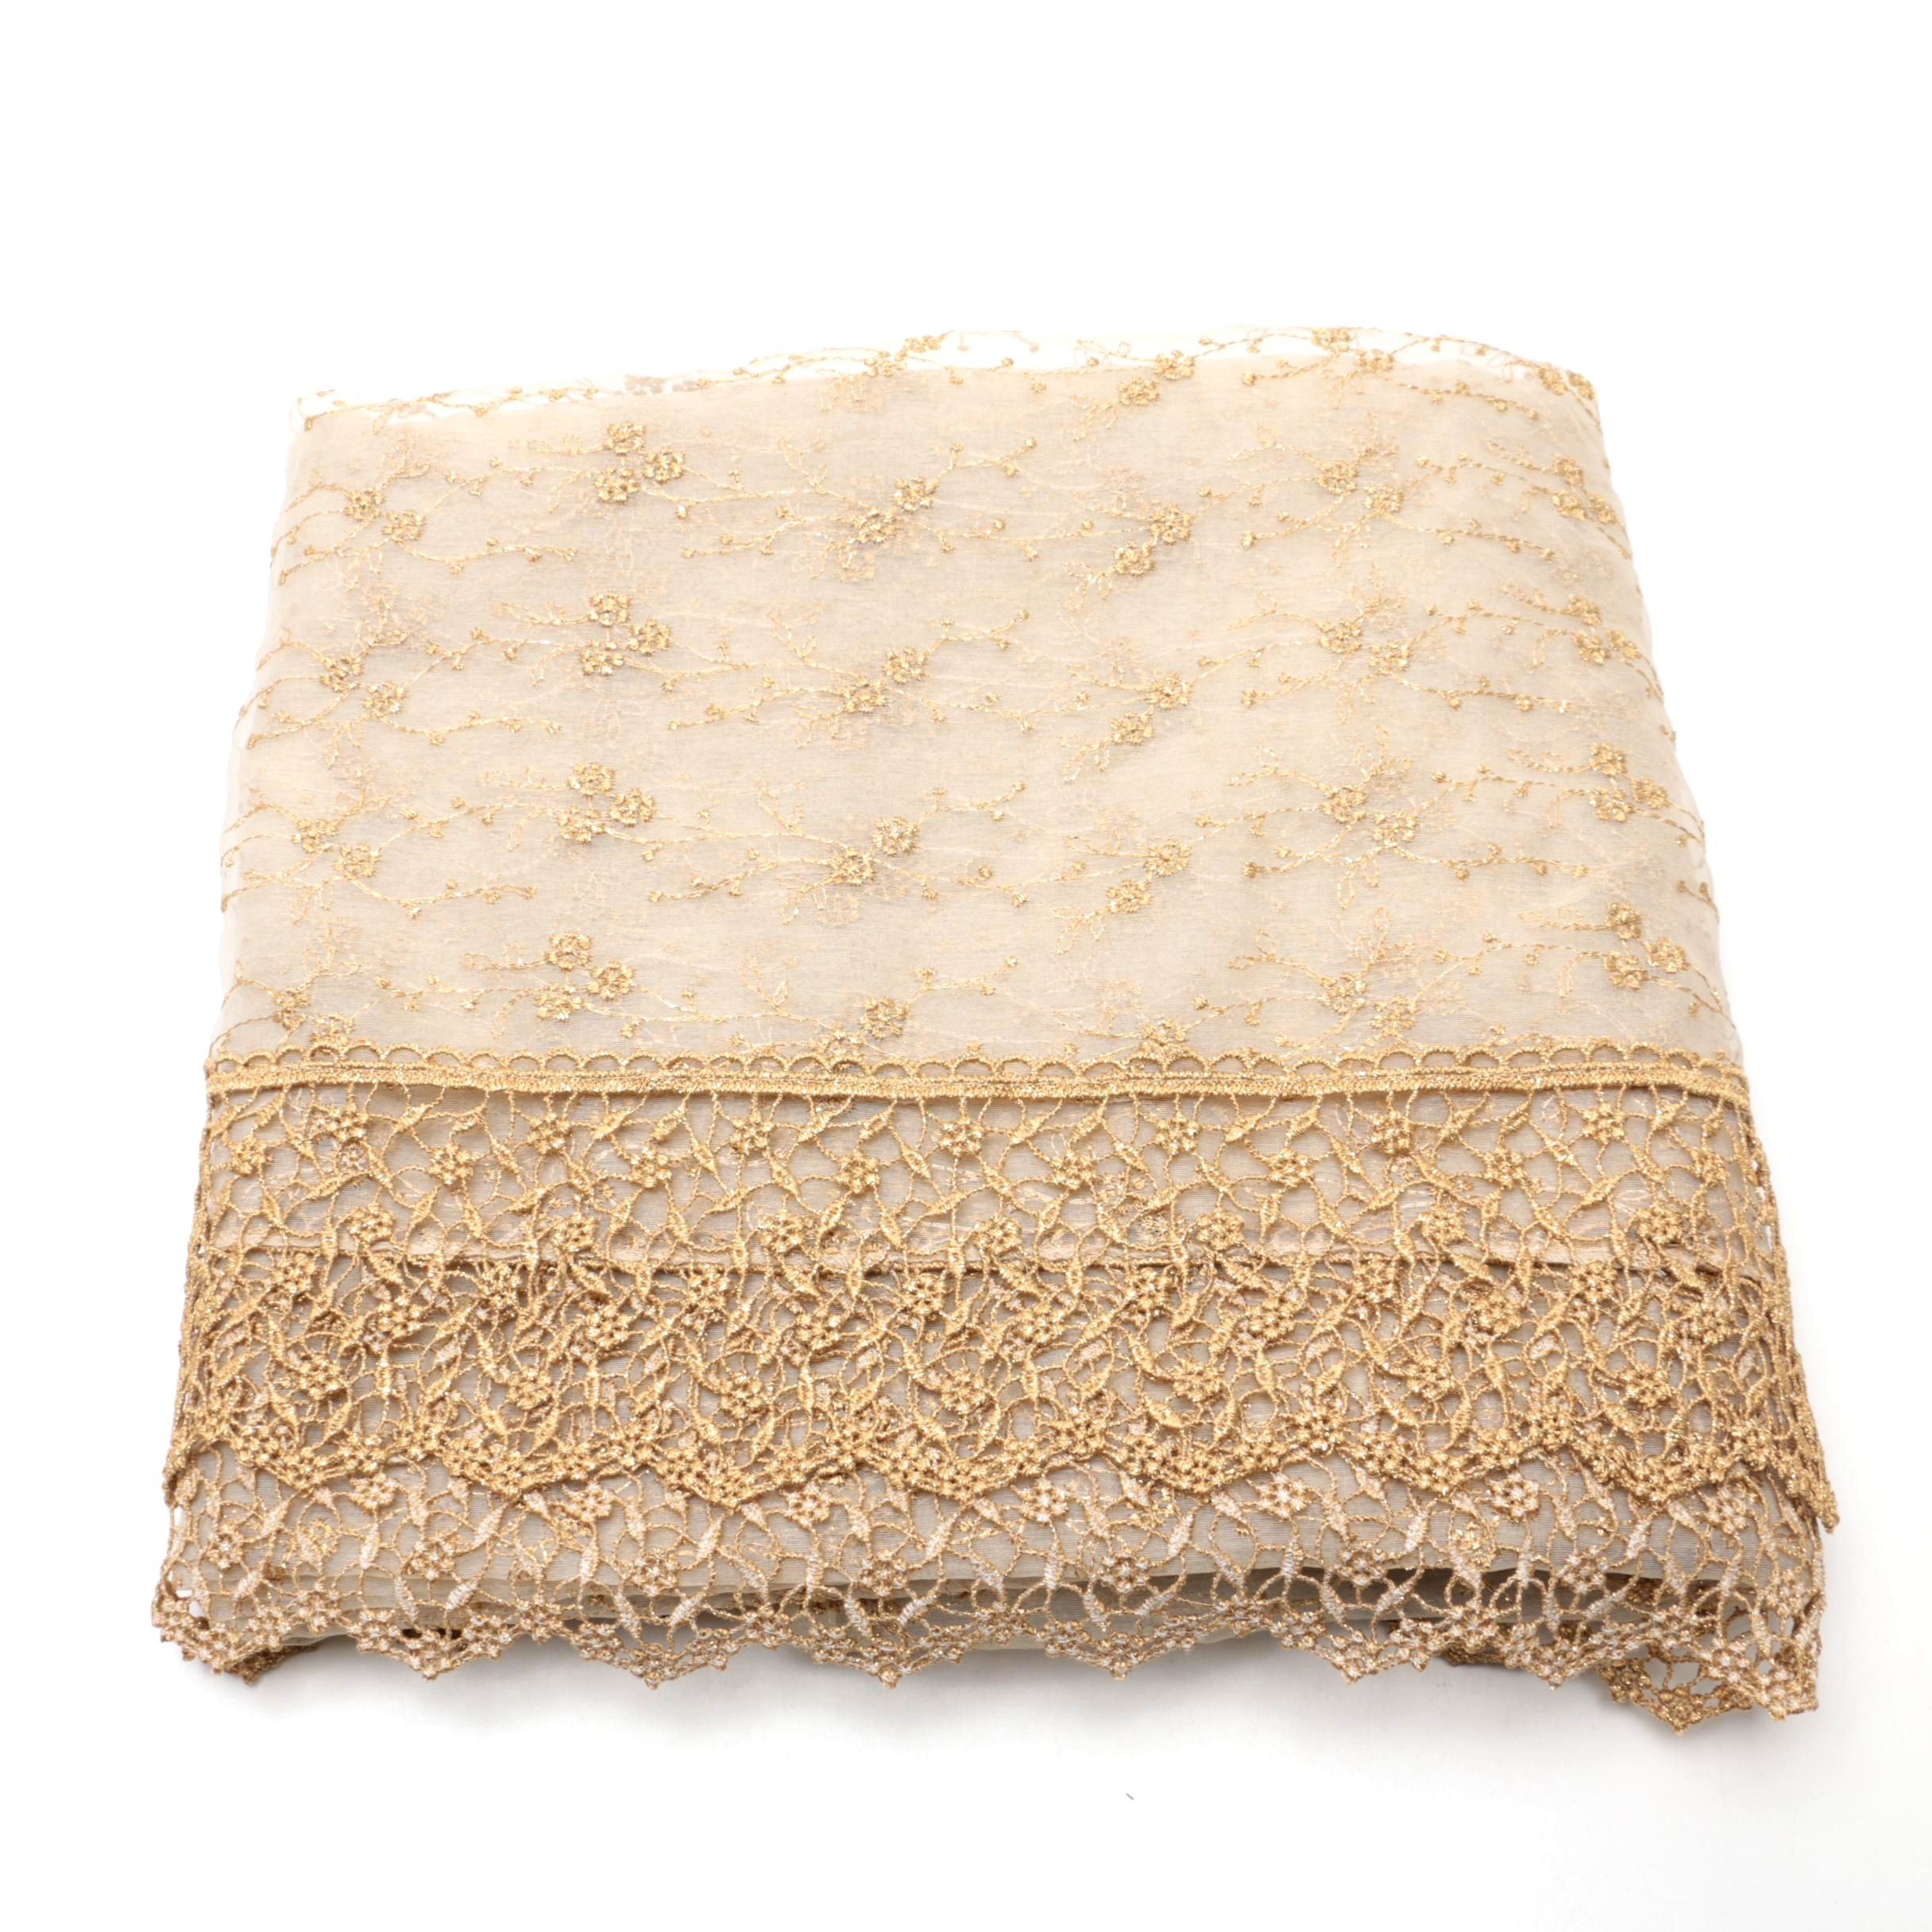 Sheer Gold Table Runner With Lace Trim